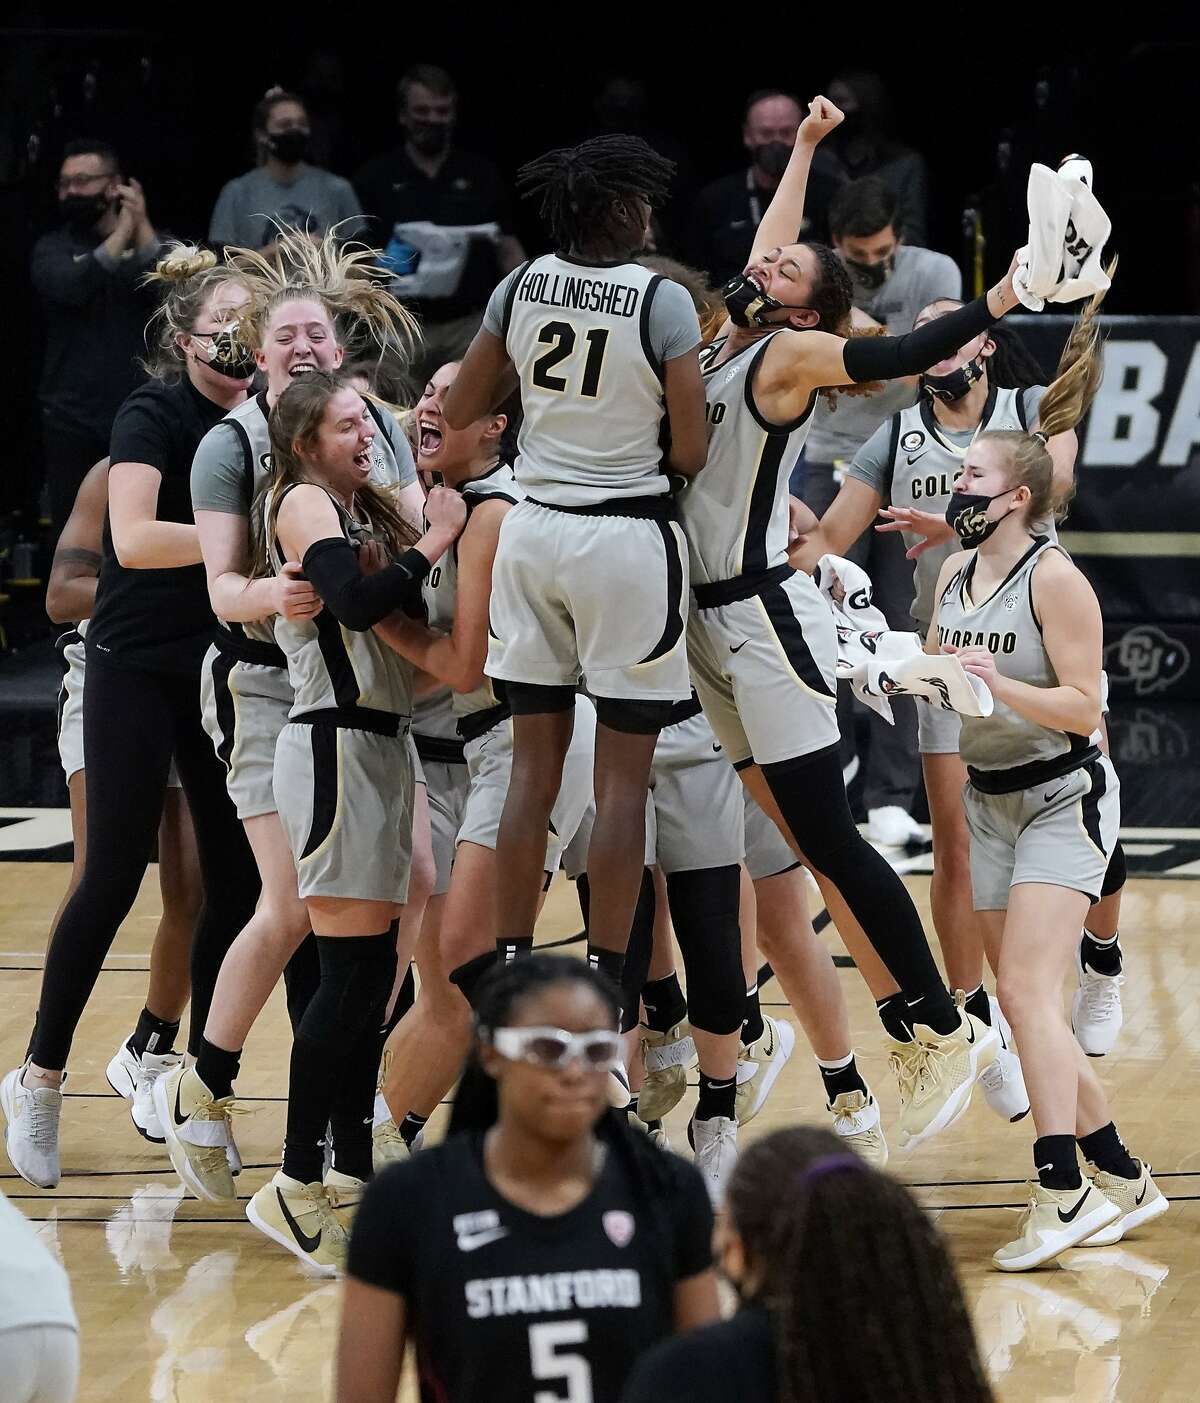 Colorado players had reason to celebrate after handing top-ranked Stanford its first loss.